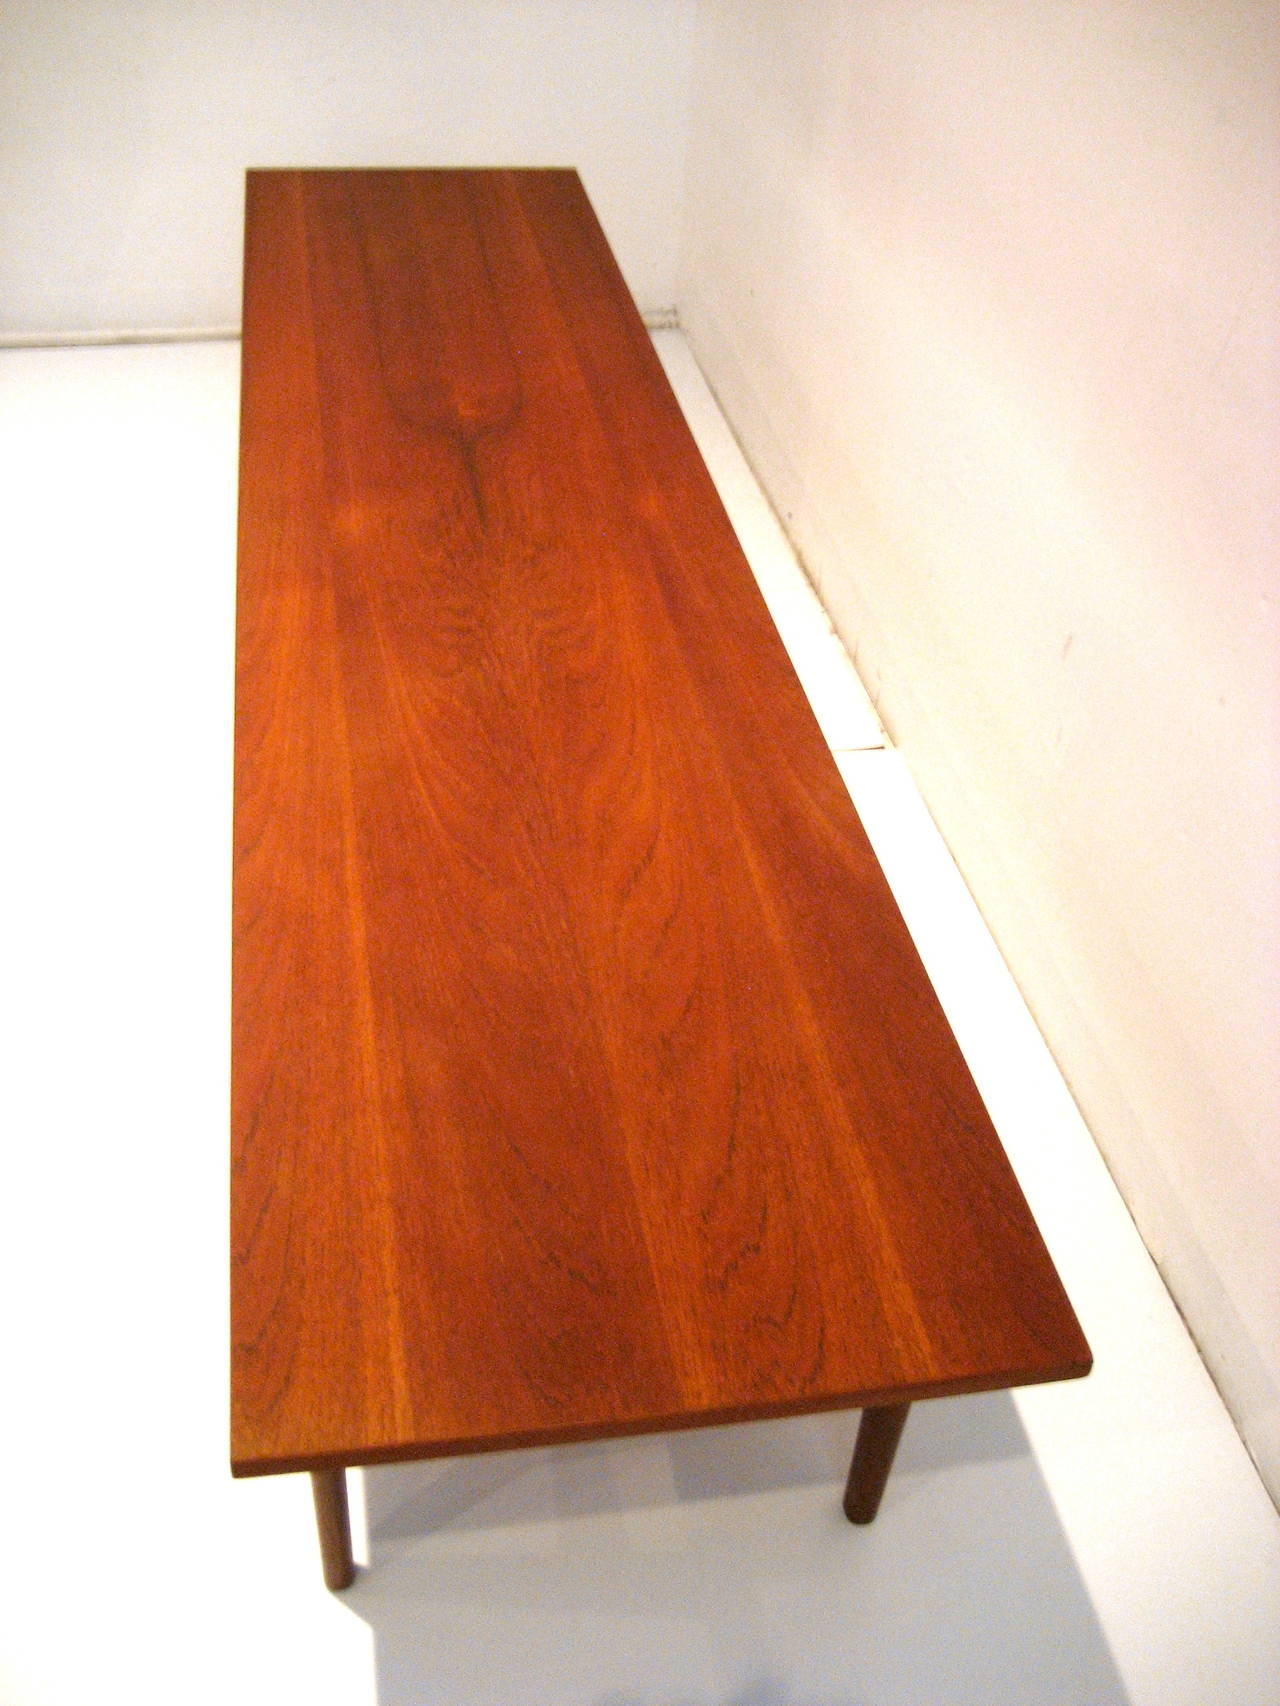 Danish Modern Long Coffee Table or Bench in Teak at 1stdibs